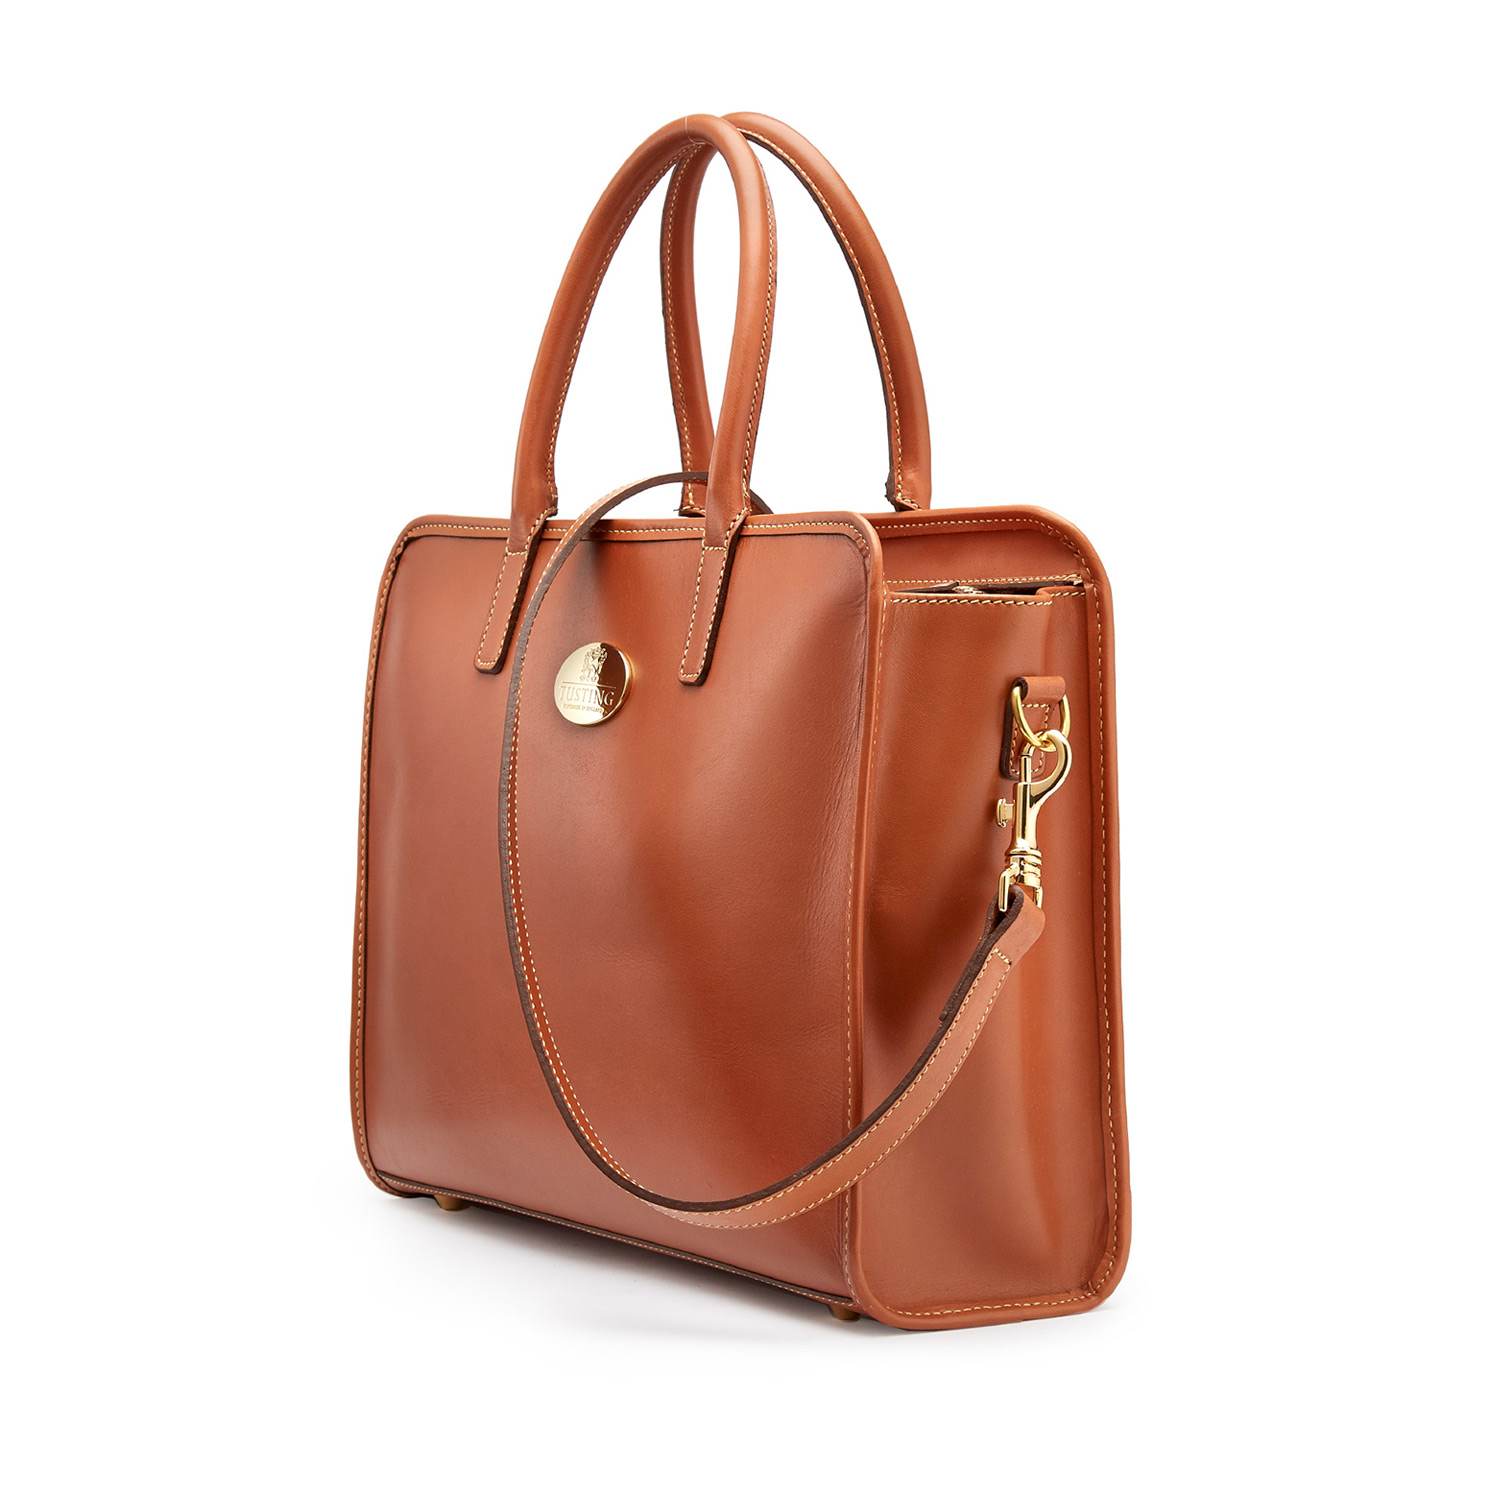 Tusting Catherine Handbag in Tan Leather